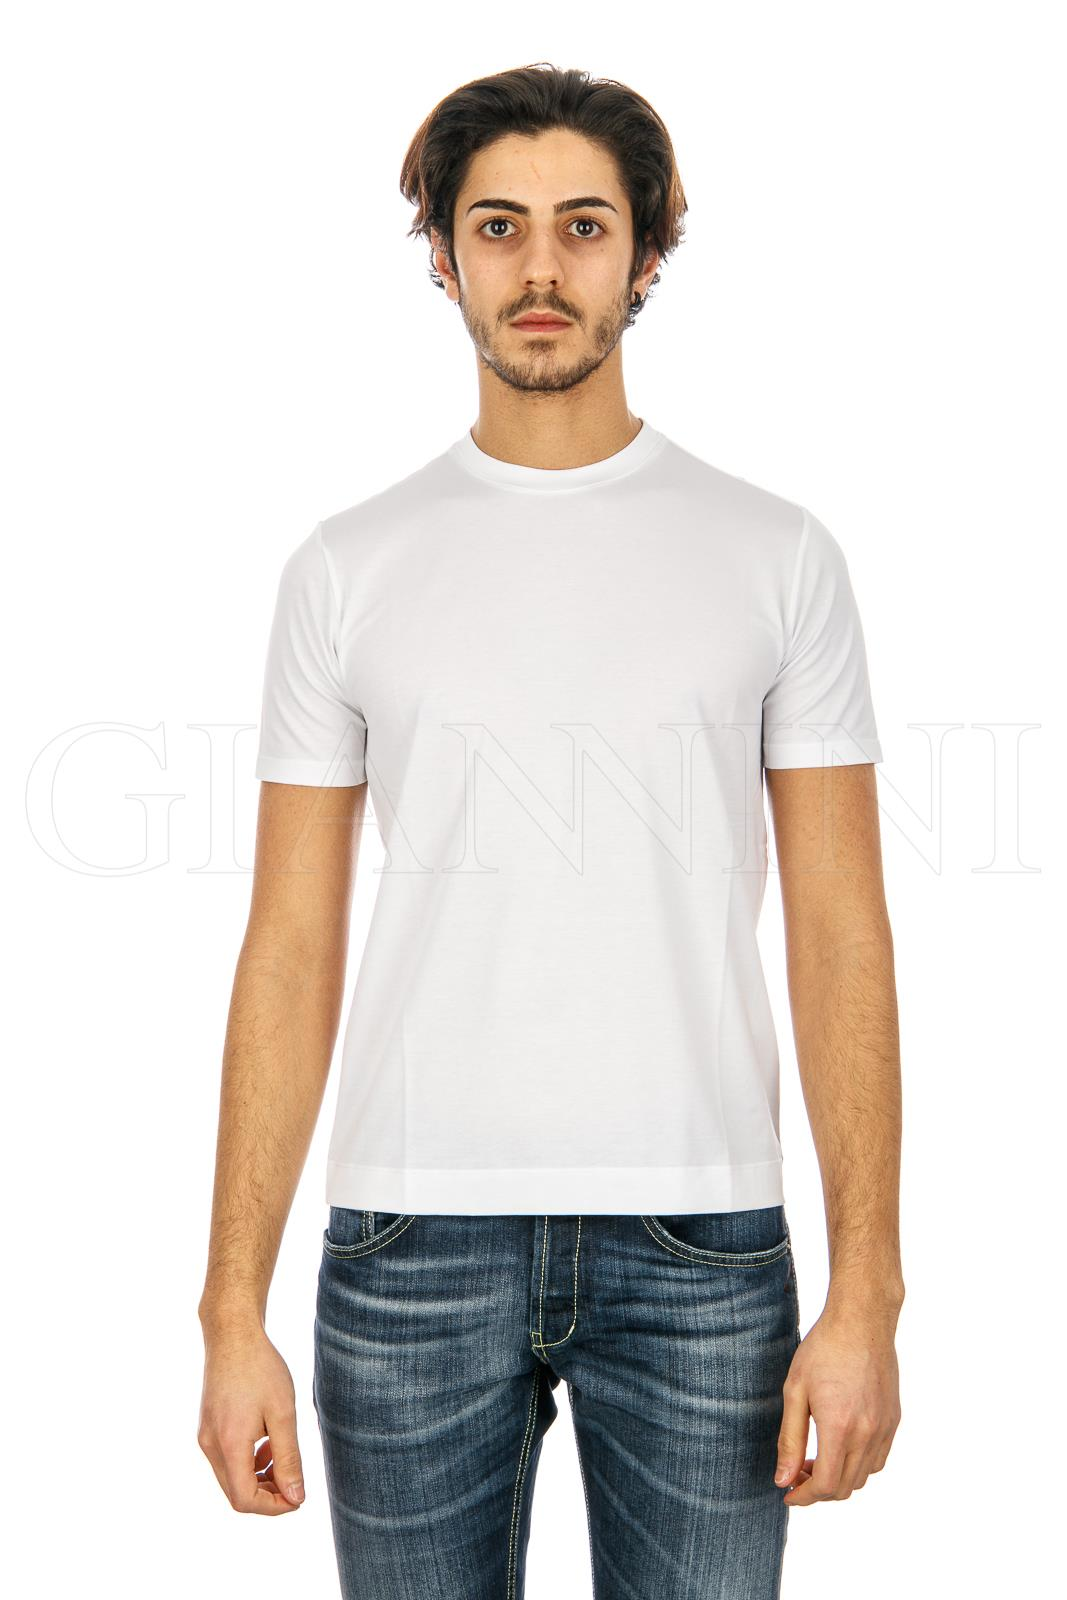 sports shoes 839b5 10d32 CRUCIANI T-shirt CUJOS.G30 for Men | GianniniShopOnline.com